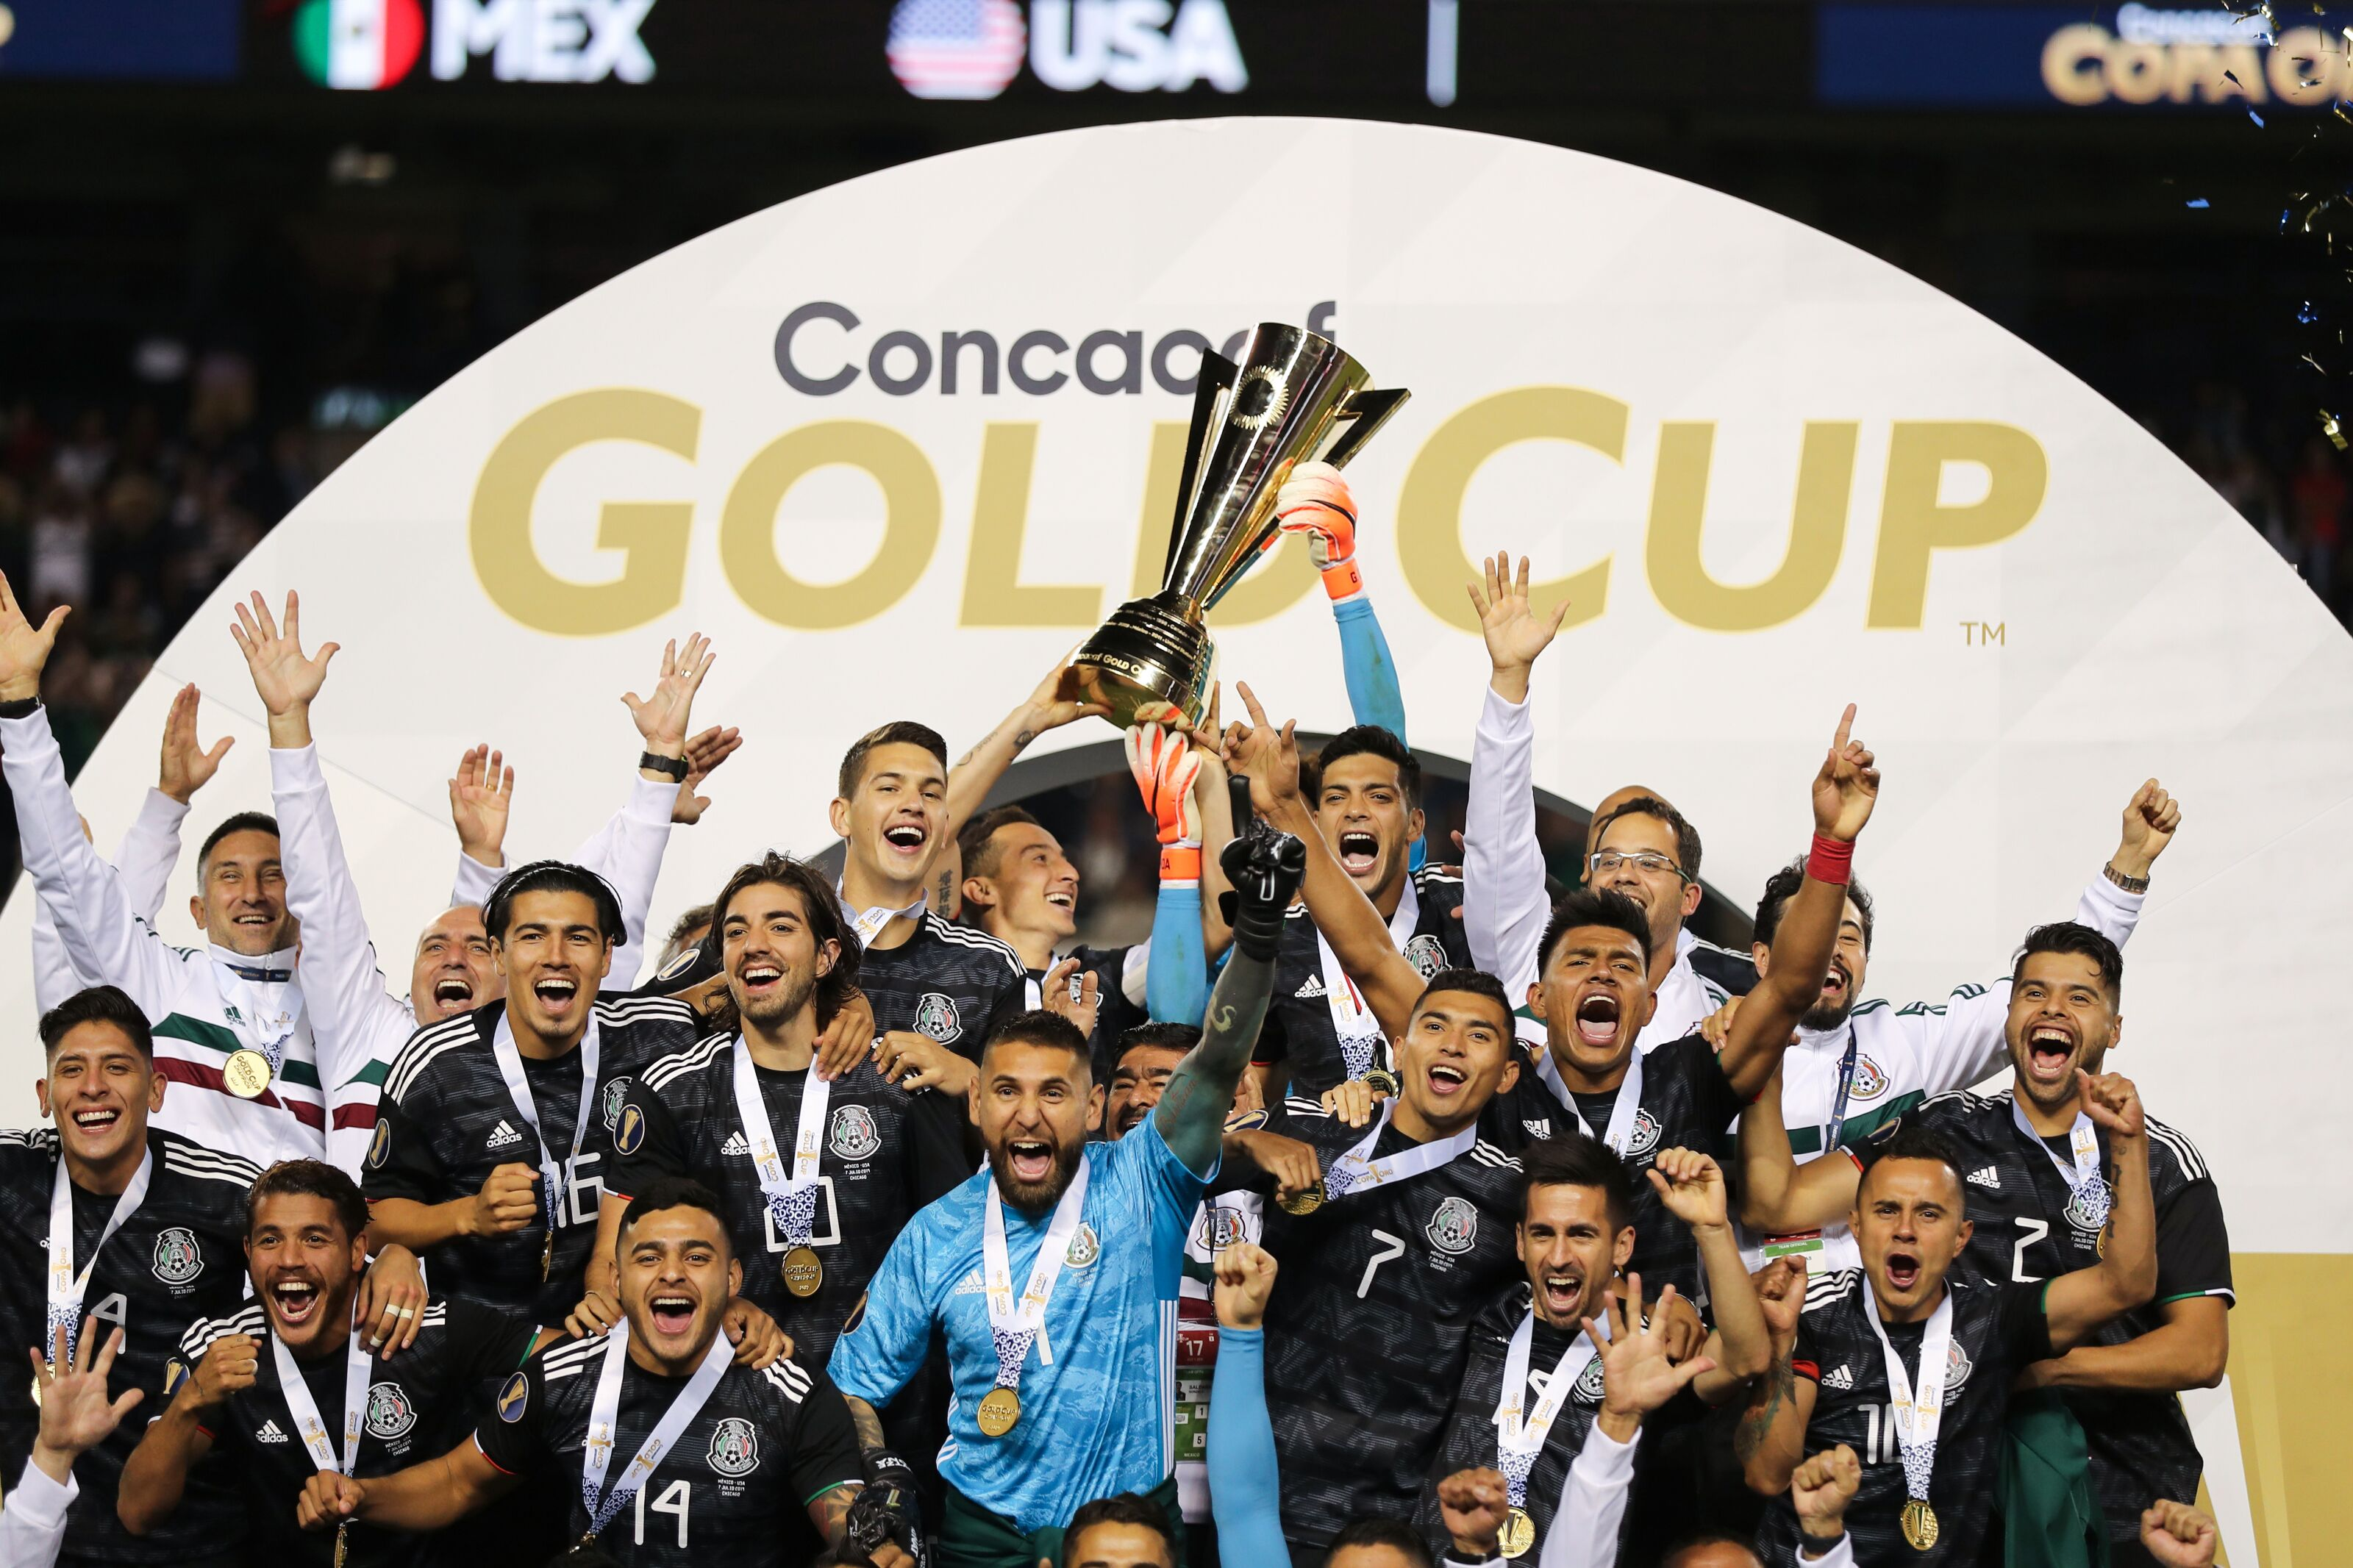 Jona delivers as El Tri slips past Team USA in Gold Cup final